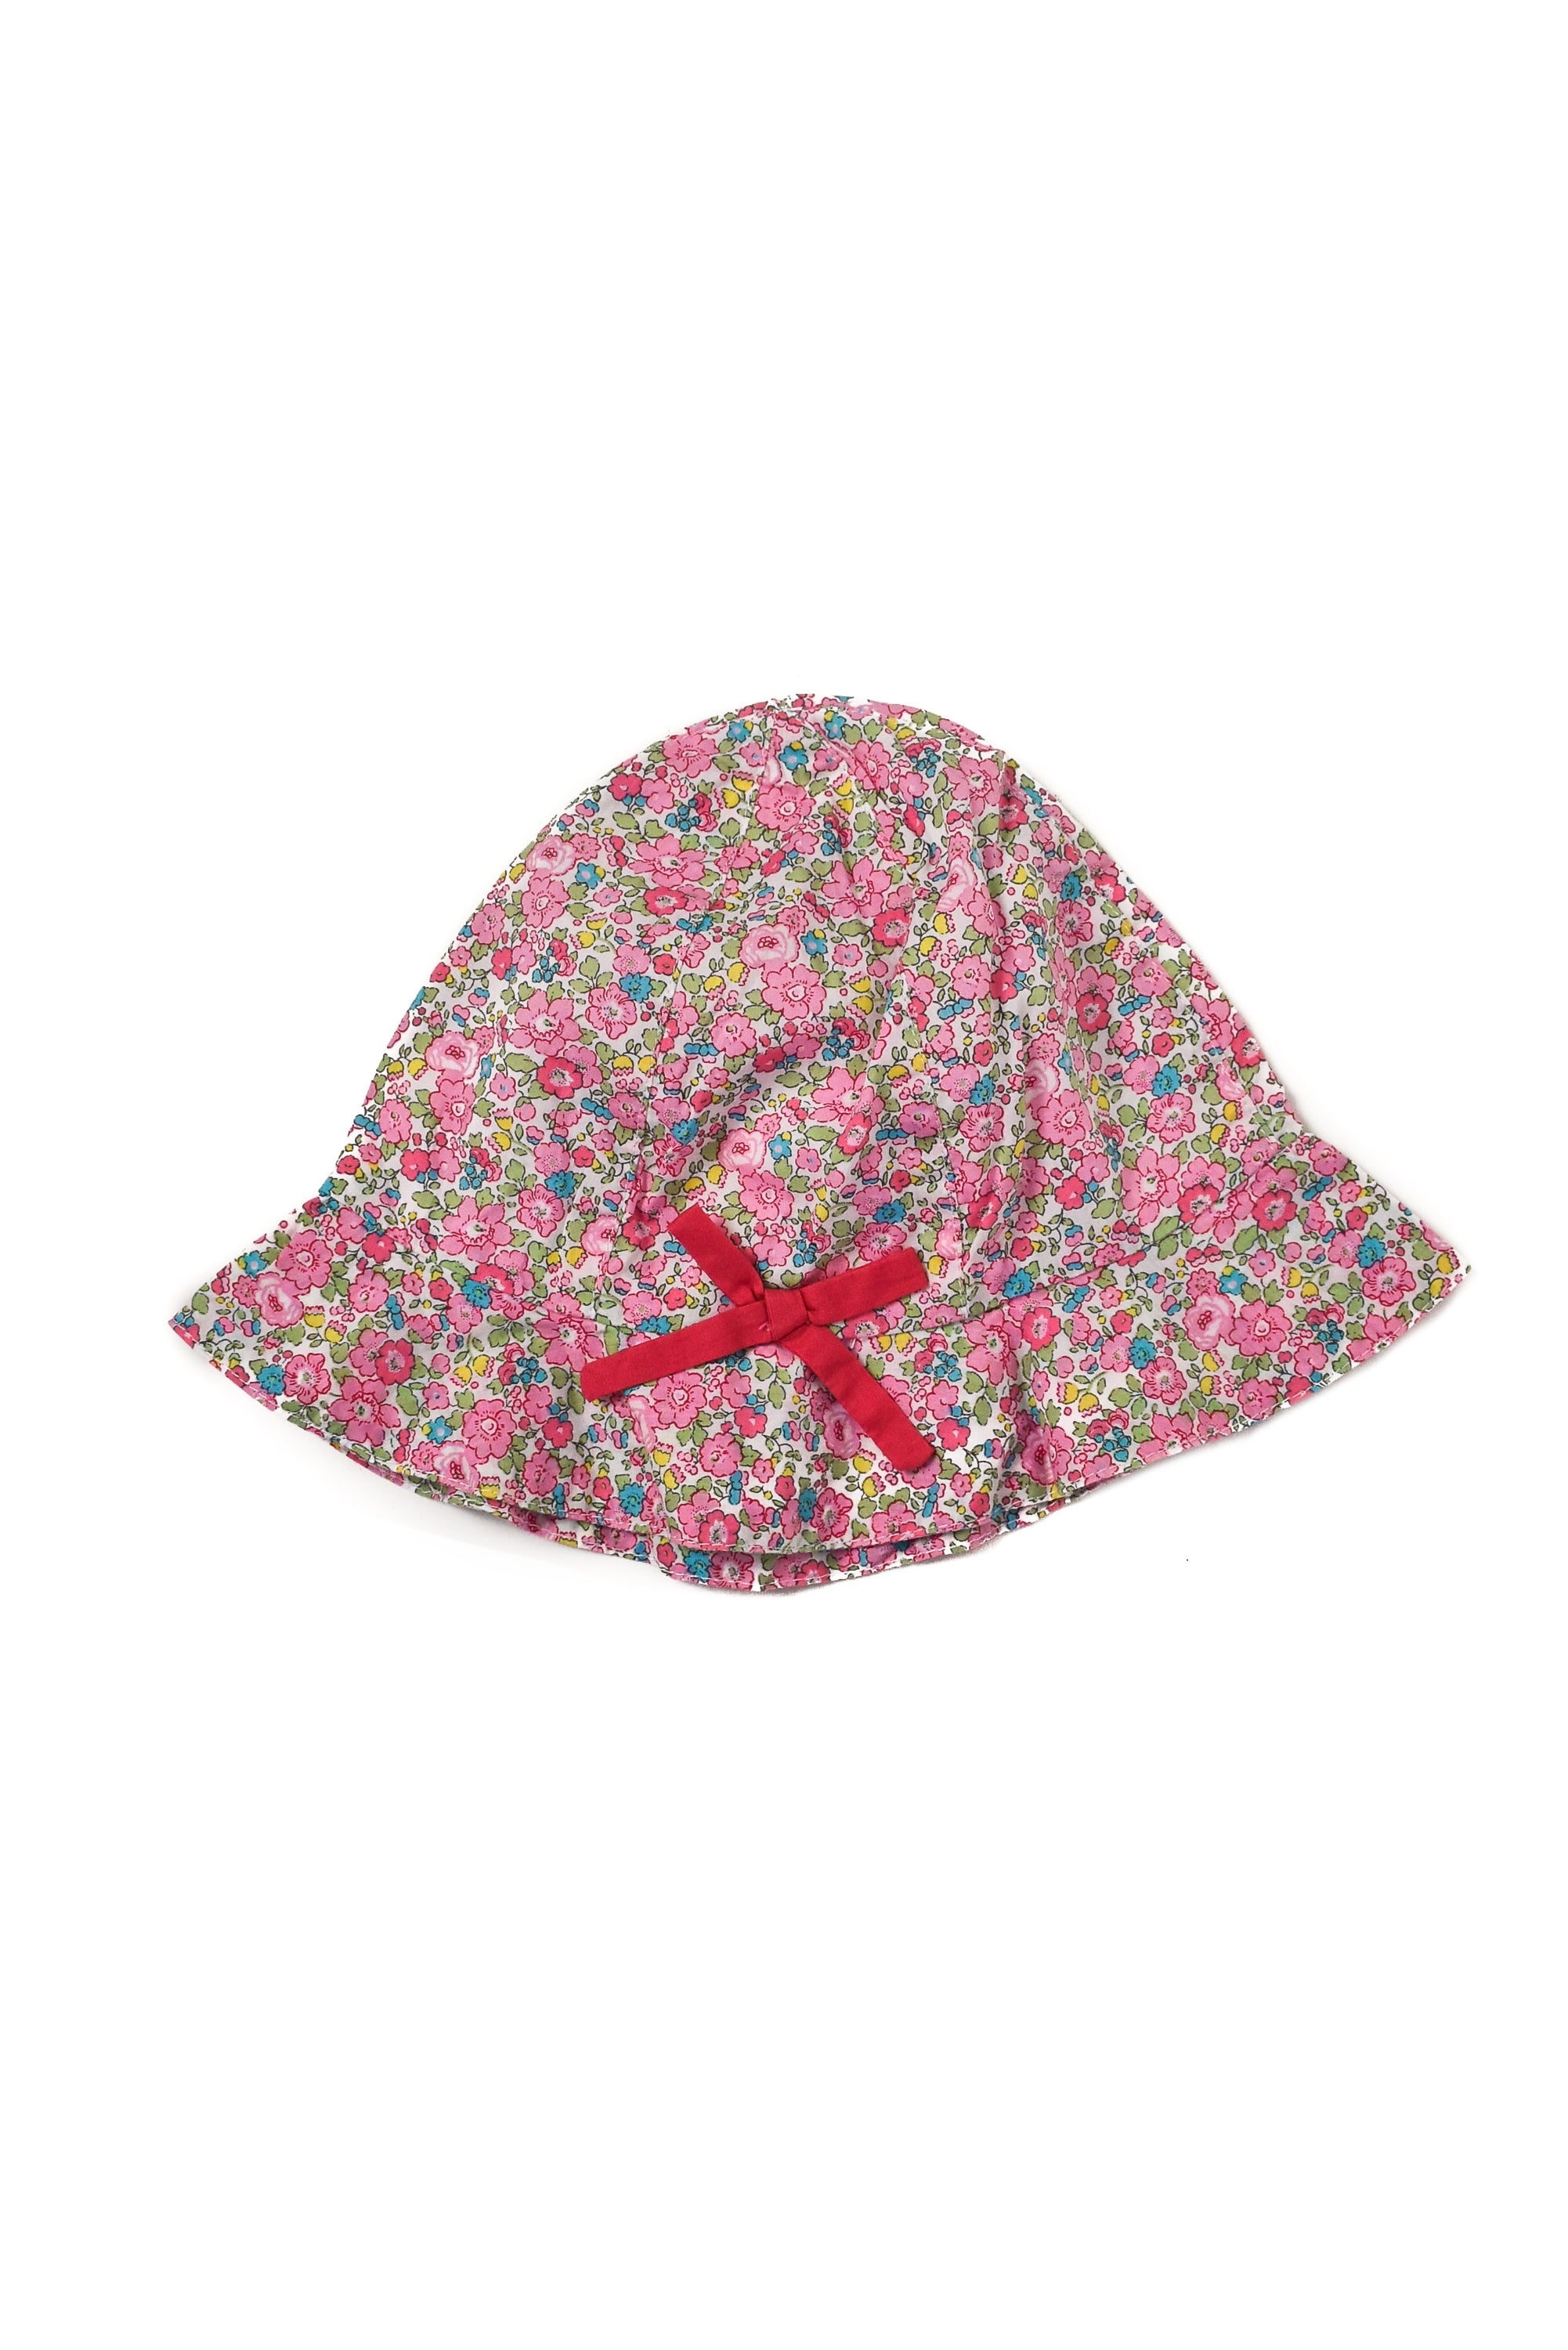 10006642 Jacadi Baby~Hat 12-18M at Retykle